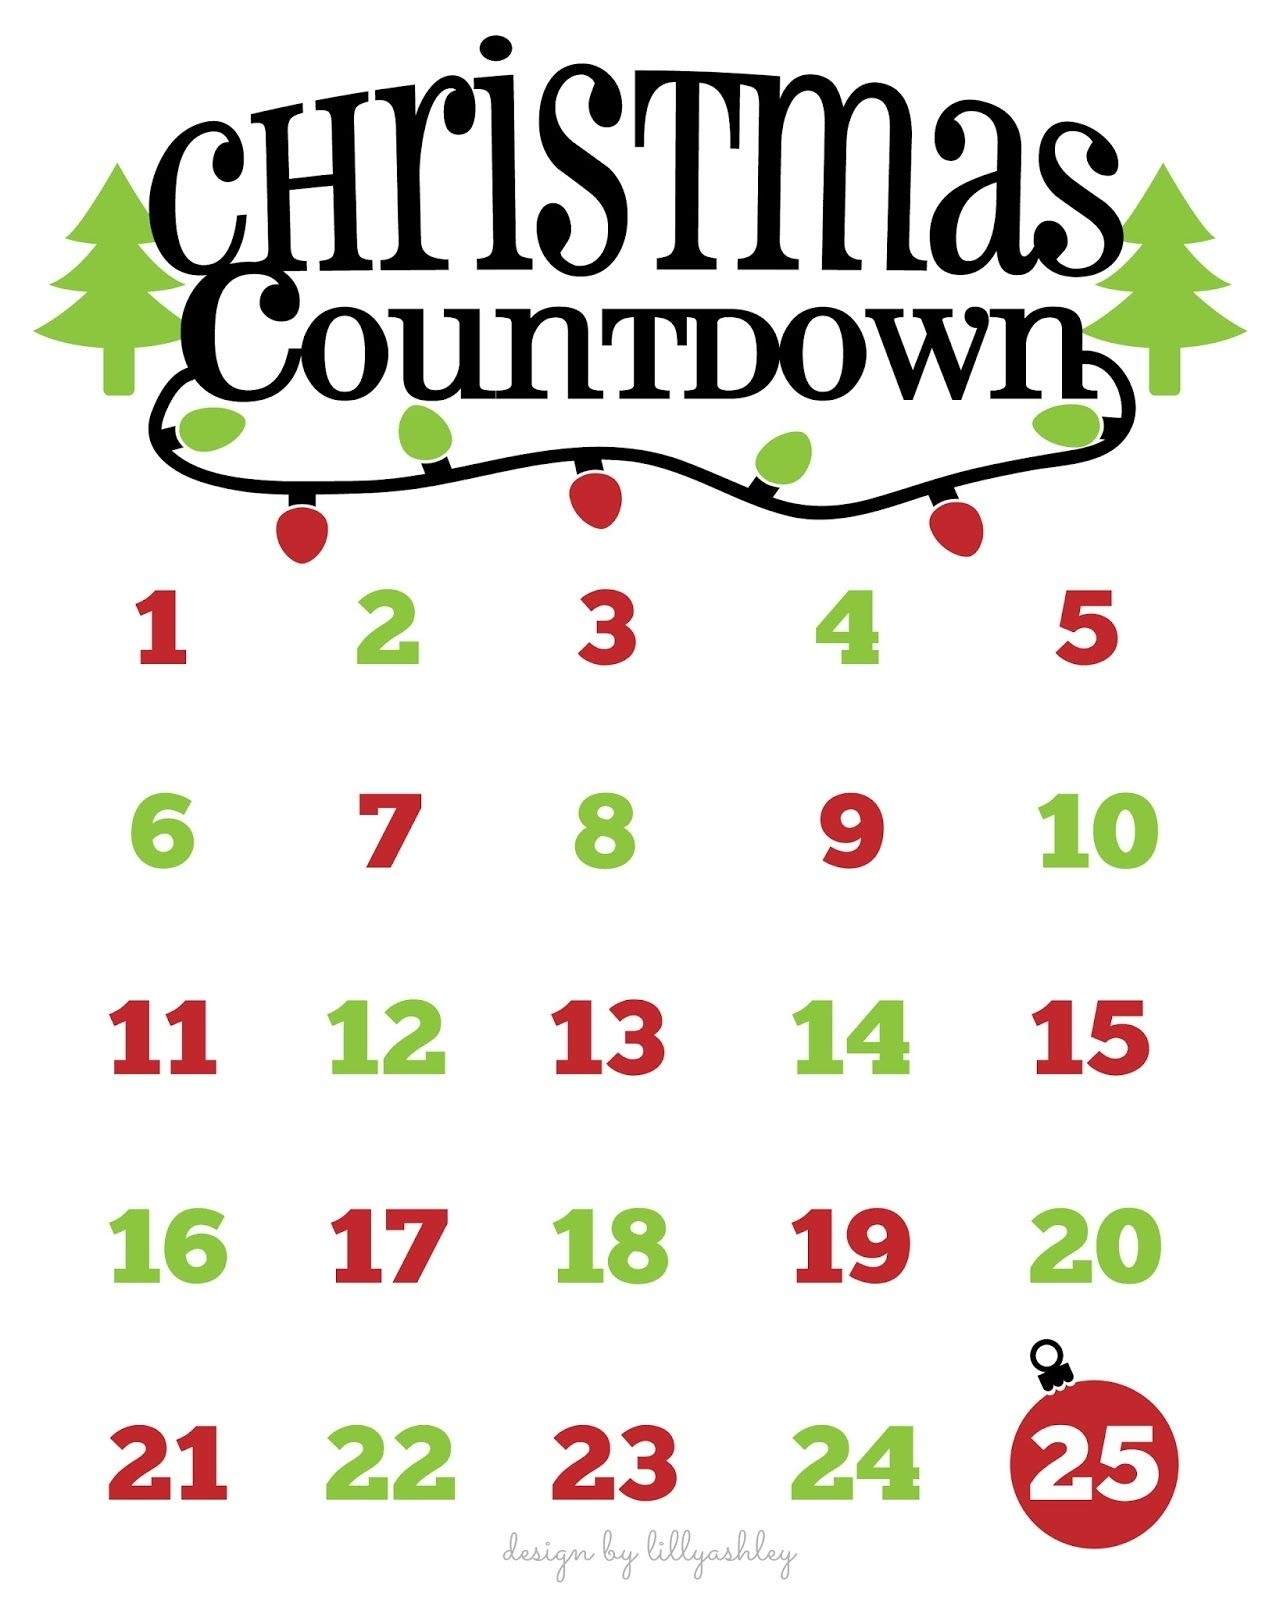 Christmas Countdown Free Printable And Free Svg | Cricut | Christmas Christmas Countdown Calendar App